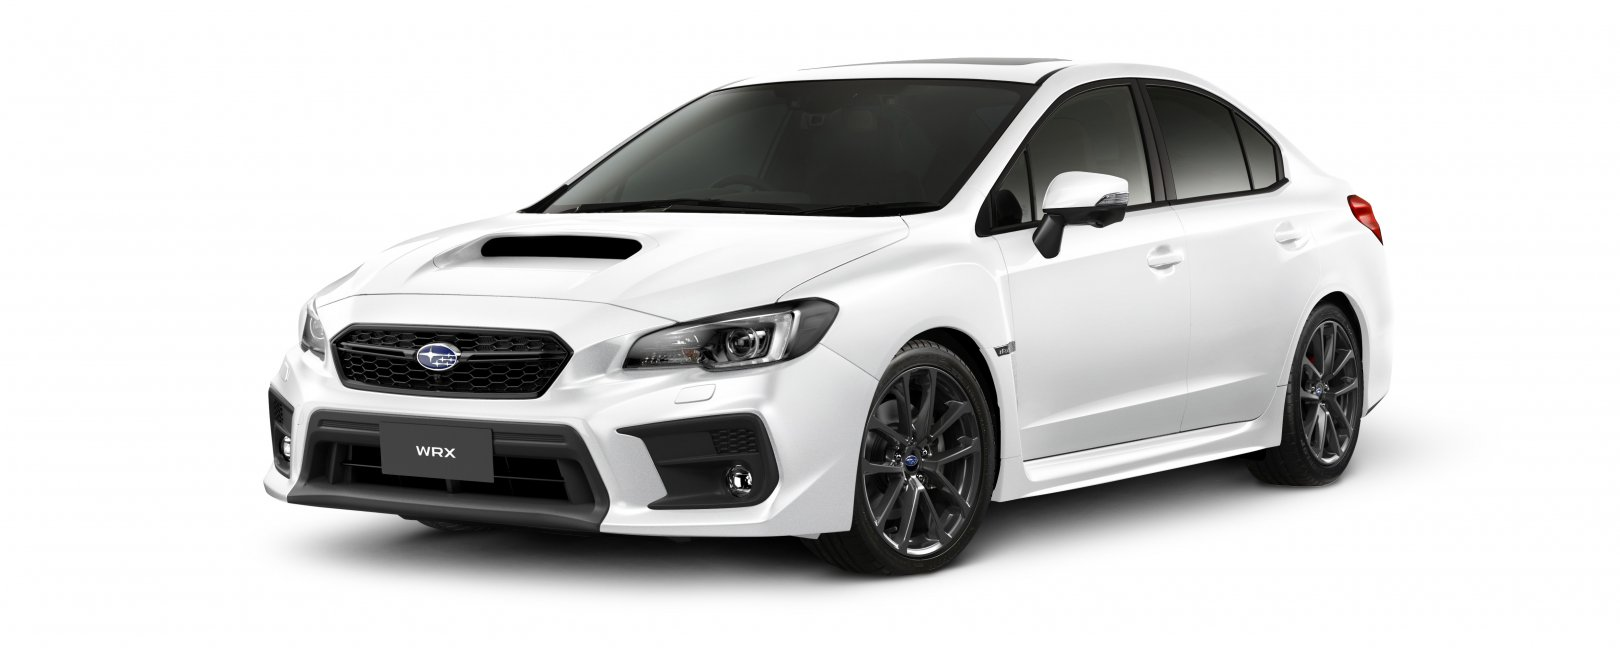 2020 WRX premium in crystal white